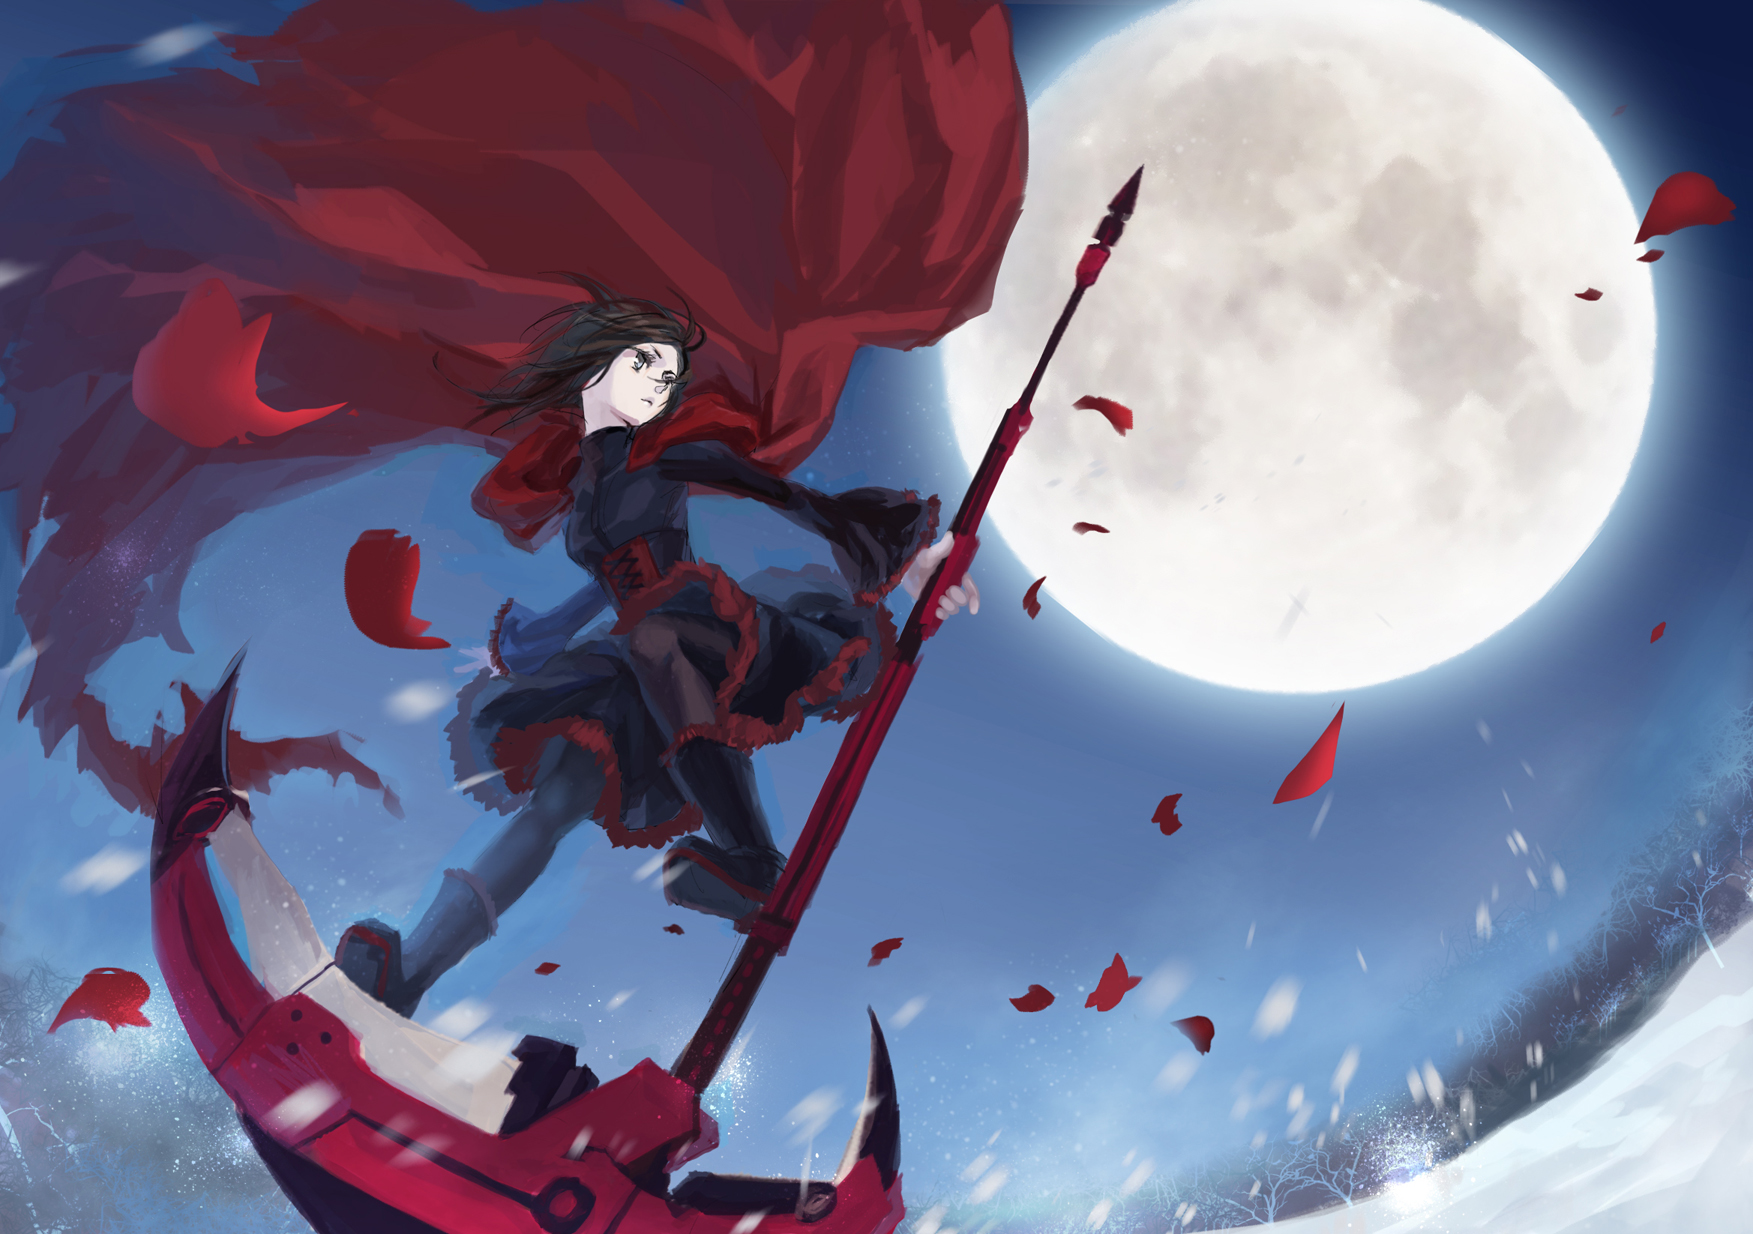 RWBY Ruby wallpaper 1753x1234 113293 WallpaperUP 1753x1234